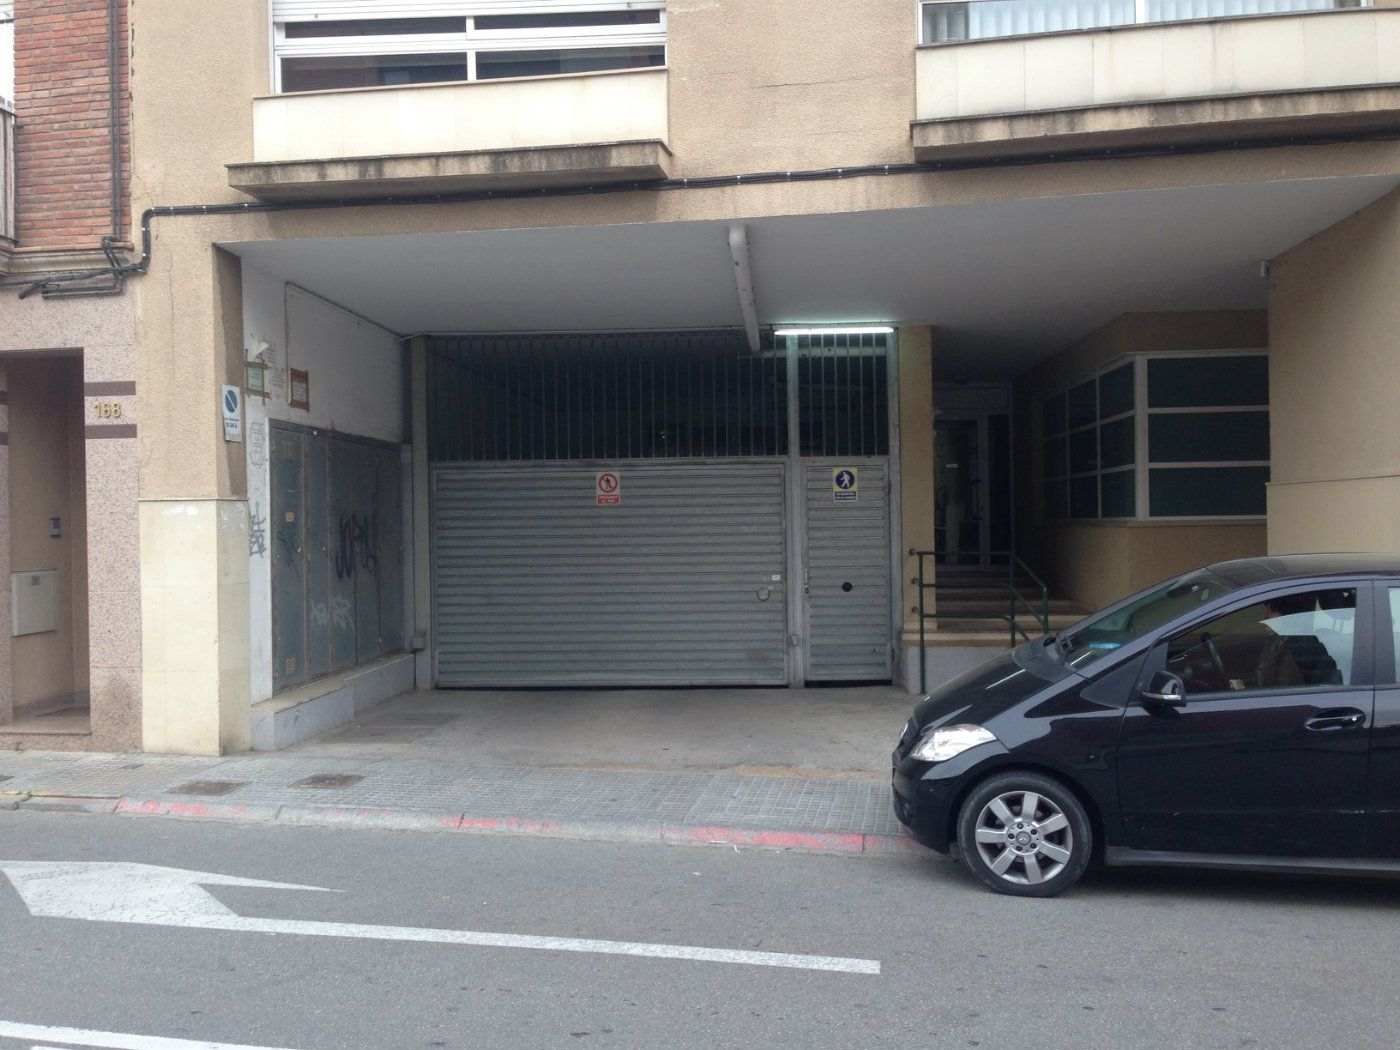 Parking coche en Carrer Corro, 166 Soterrani 1r